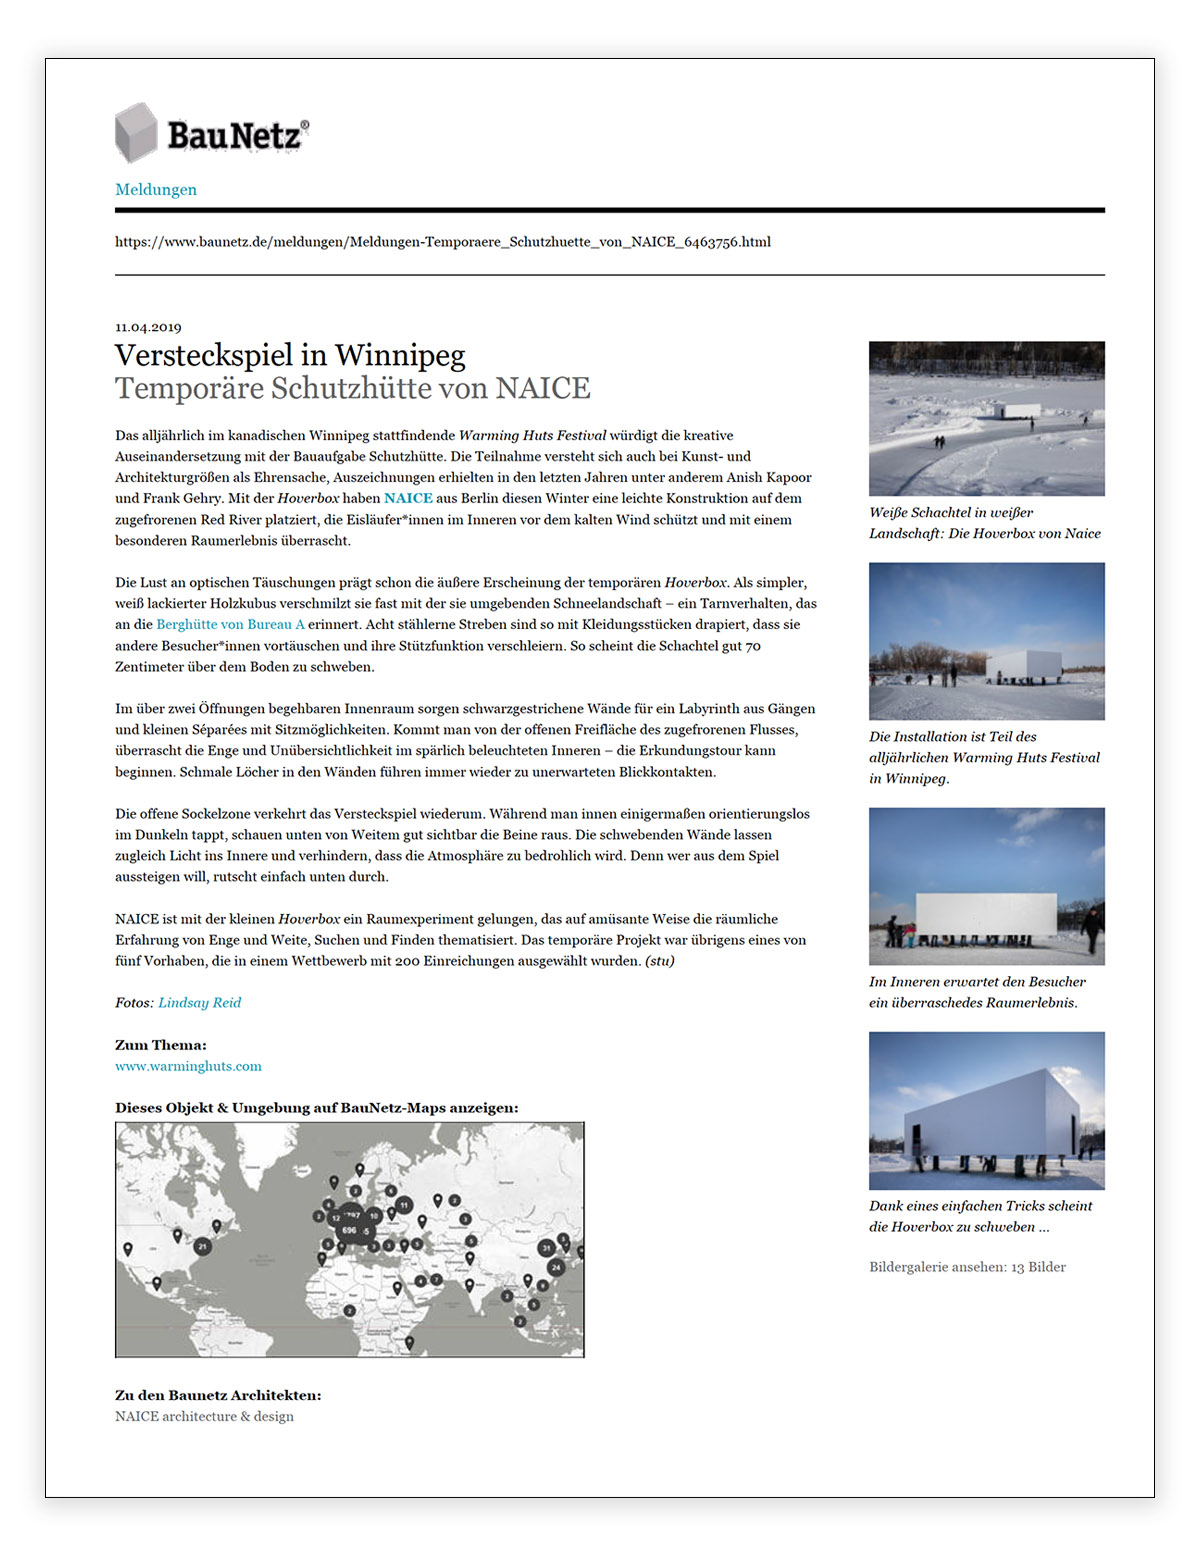 Screenshot of the article on BauNetz.de